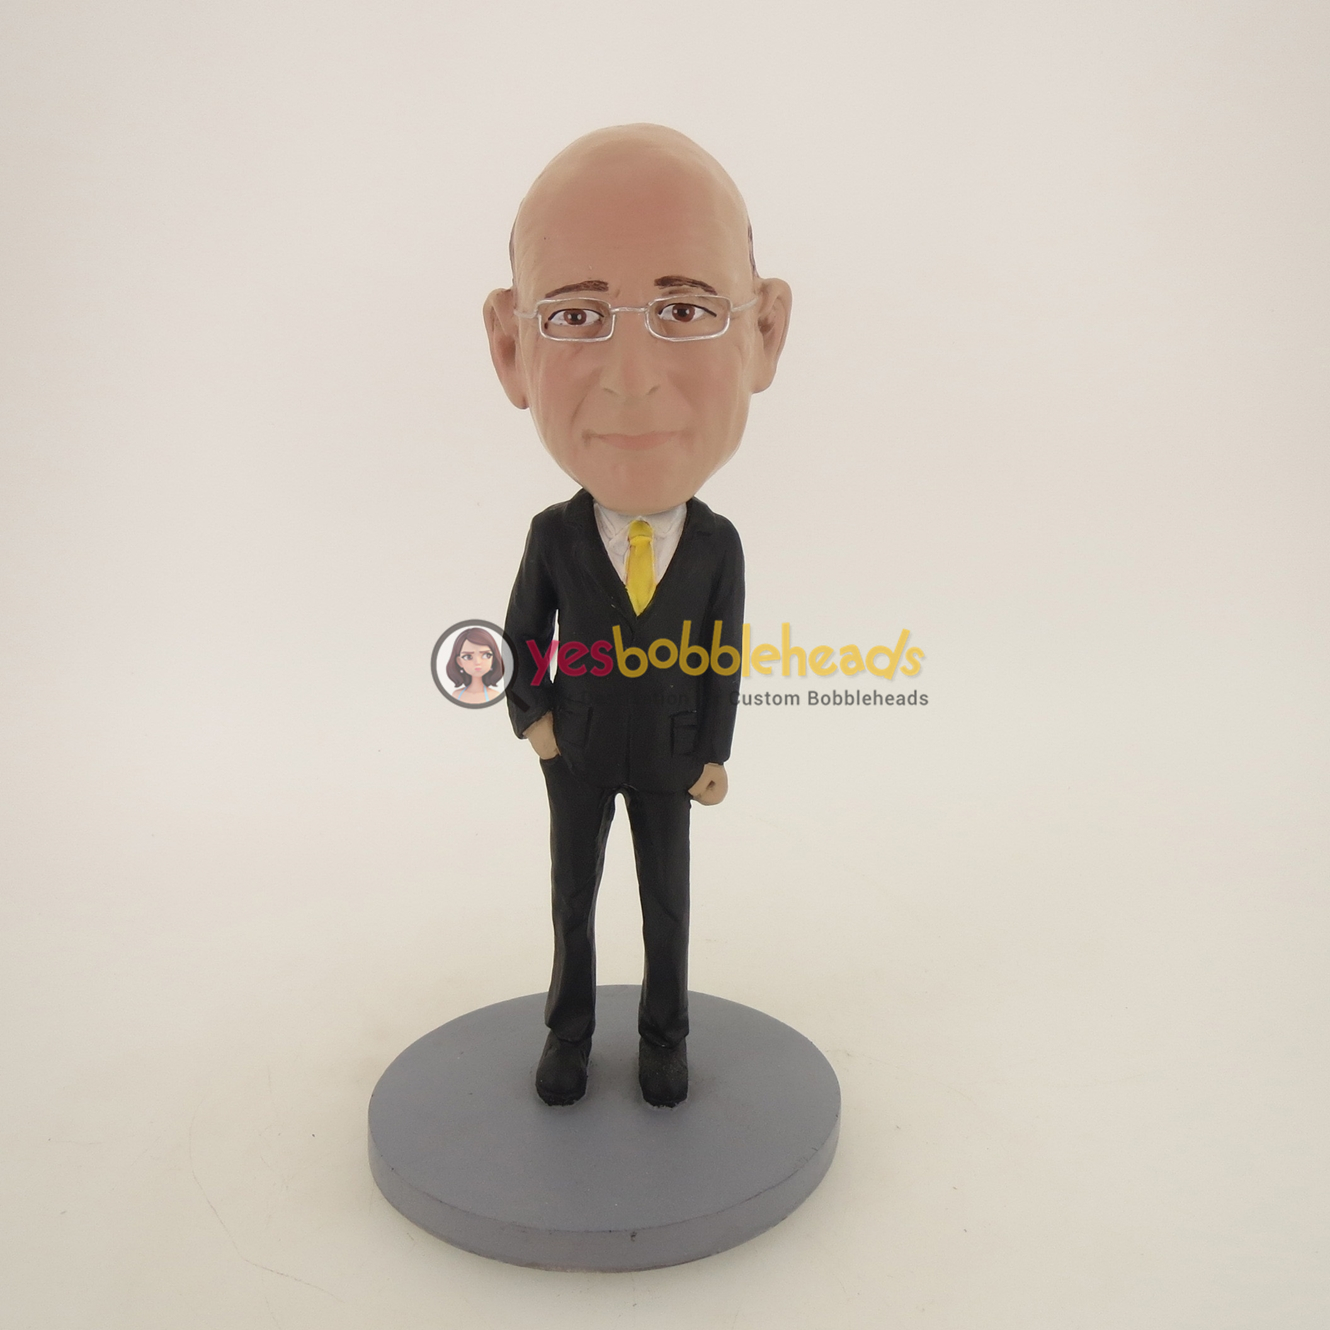 Picture of Custom Bobblehead Doll: Business Man In Black Suit And Yellow Tie